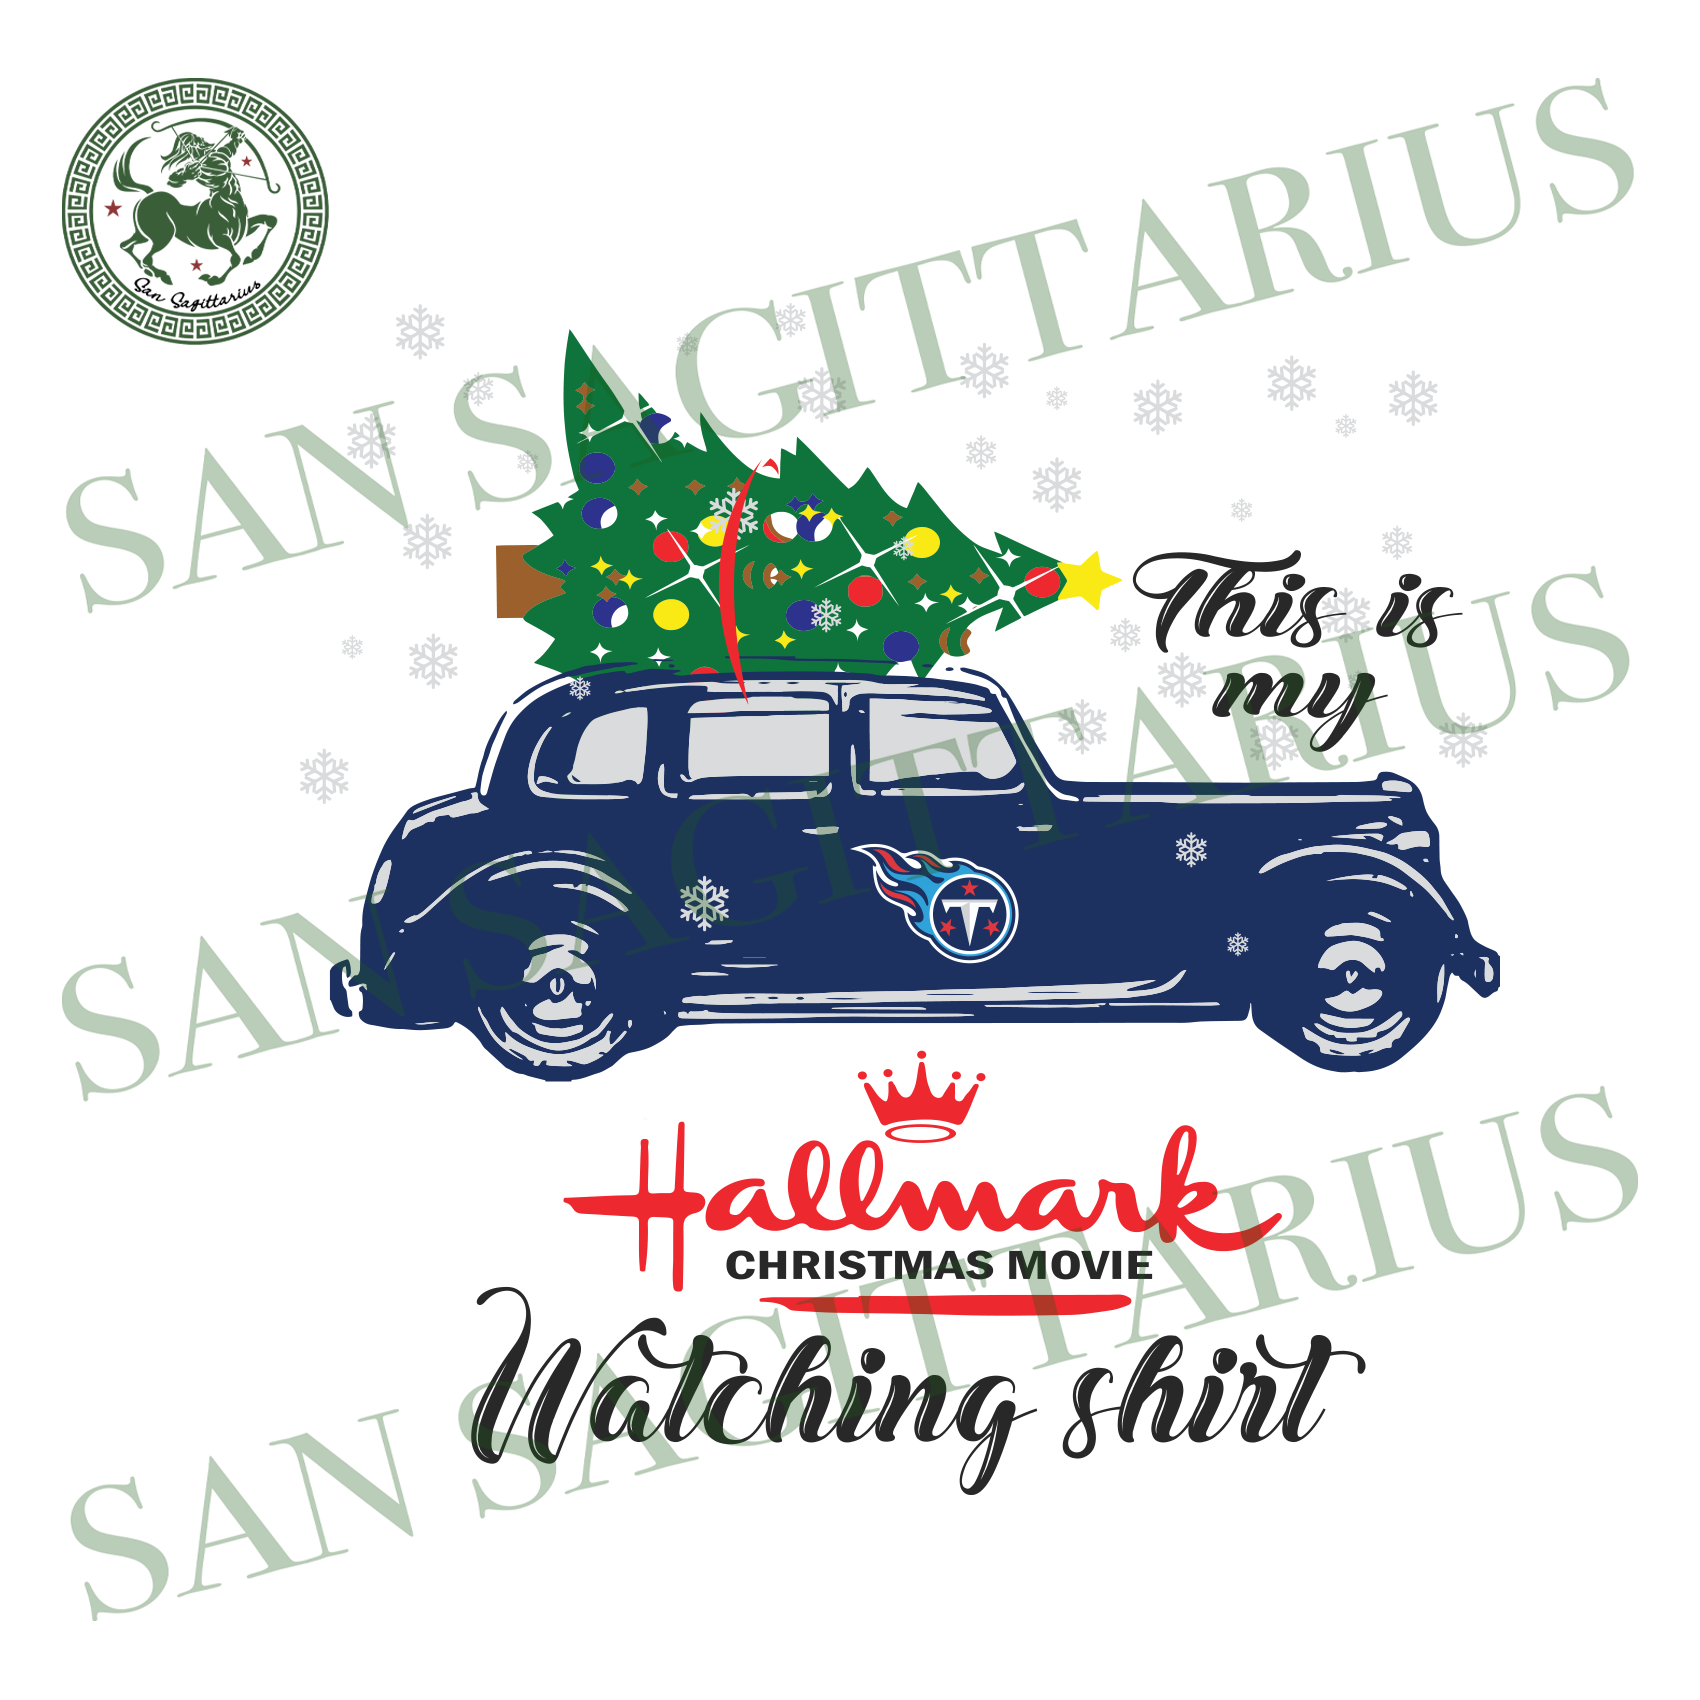 Tennessee Titans This Is My Hallmark Christmas Movie Watching Shirt, Sport Svg, Christmas Svg, Tennessee Titans Svg, NFL Sport Svg, Tennessee Titans NFL Svg, , Football Svg, Football Shirt, F